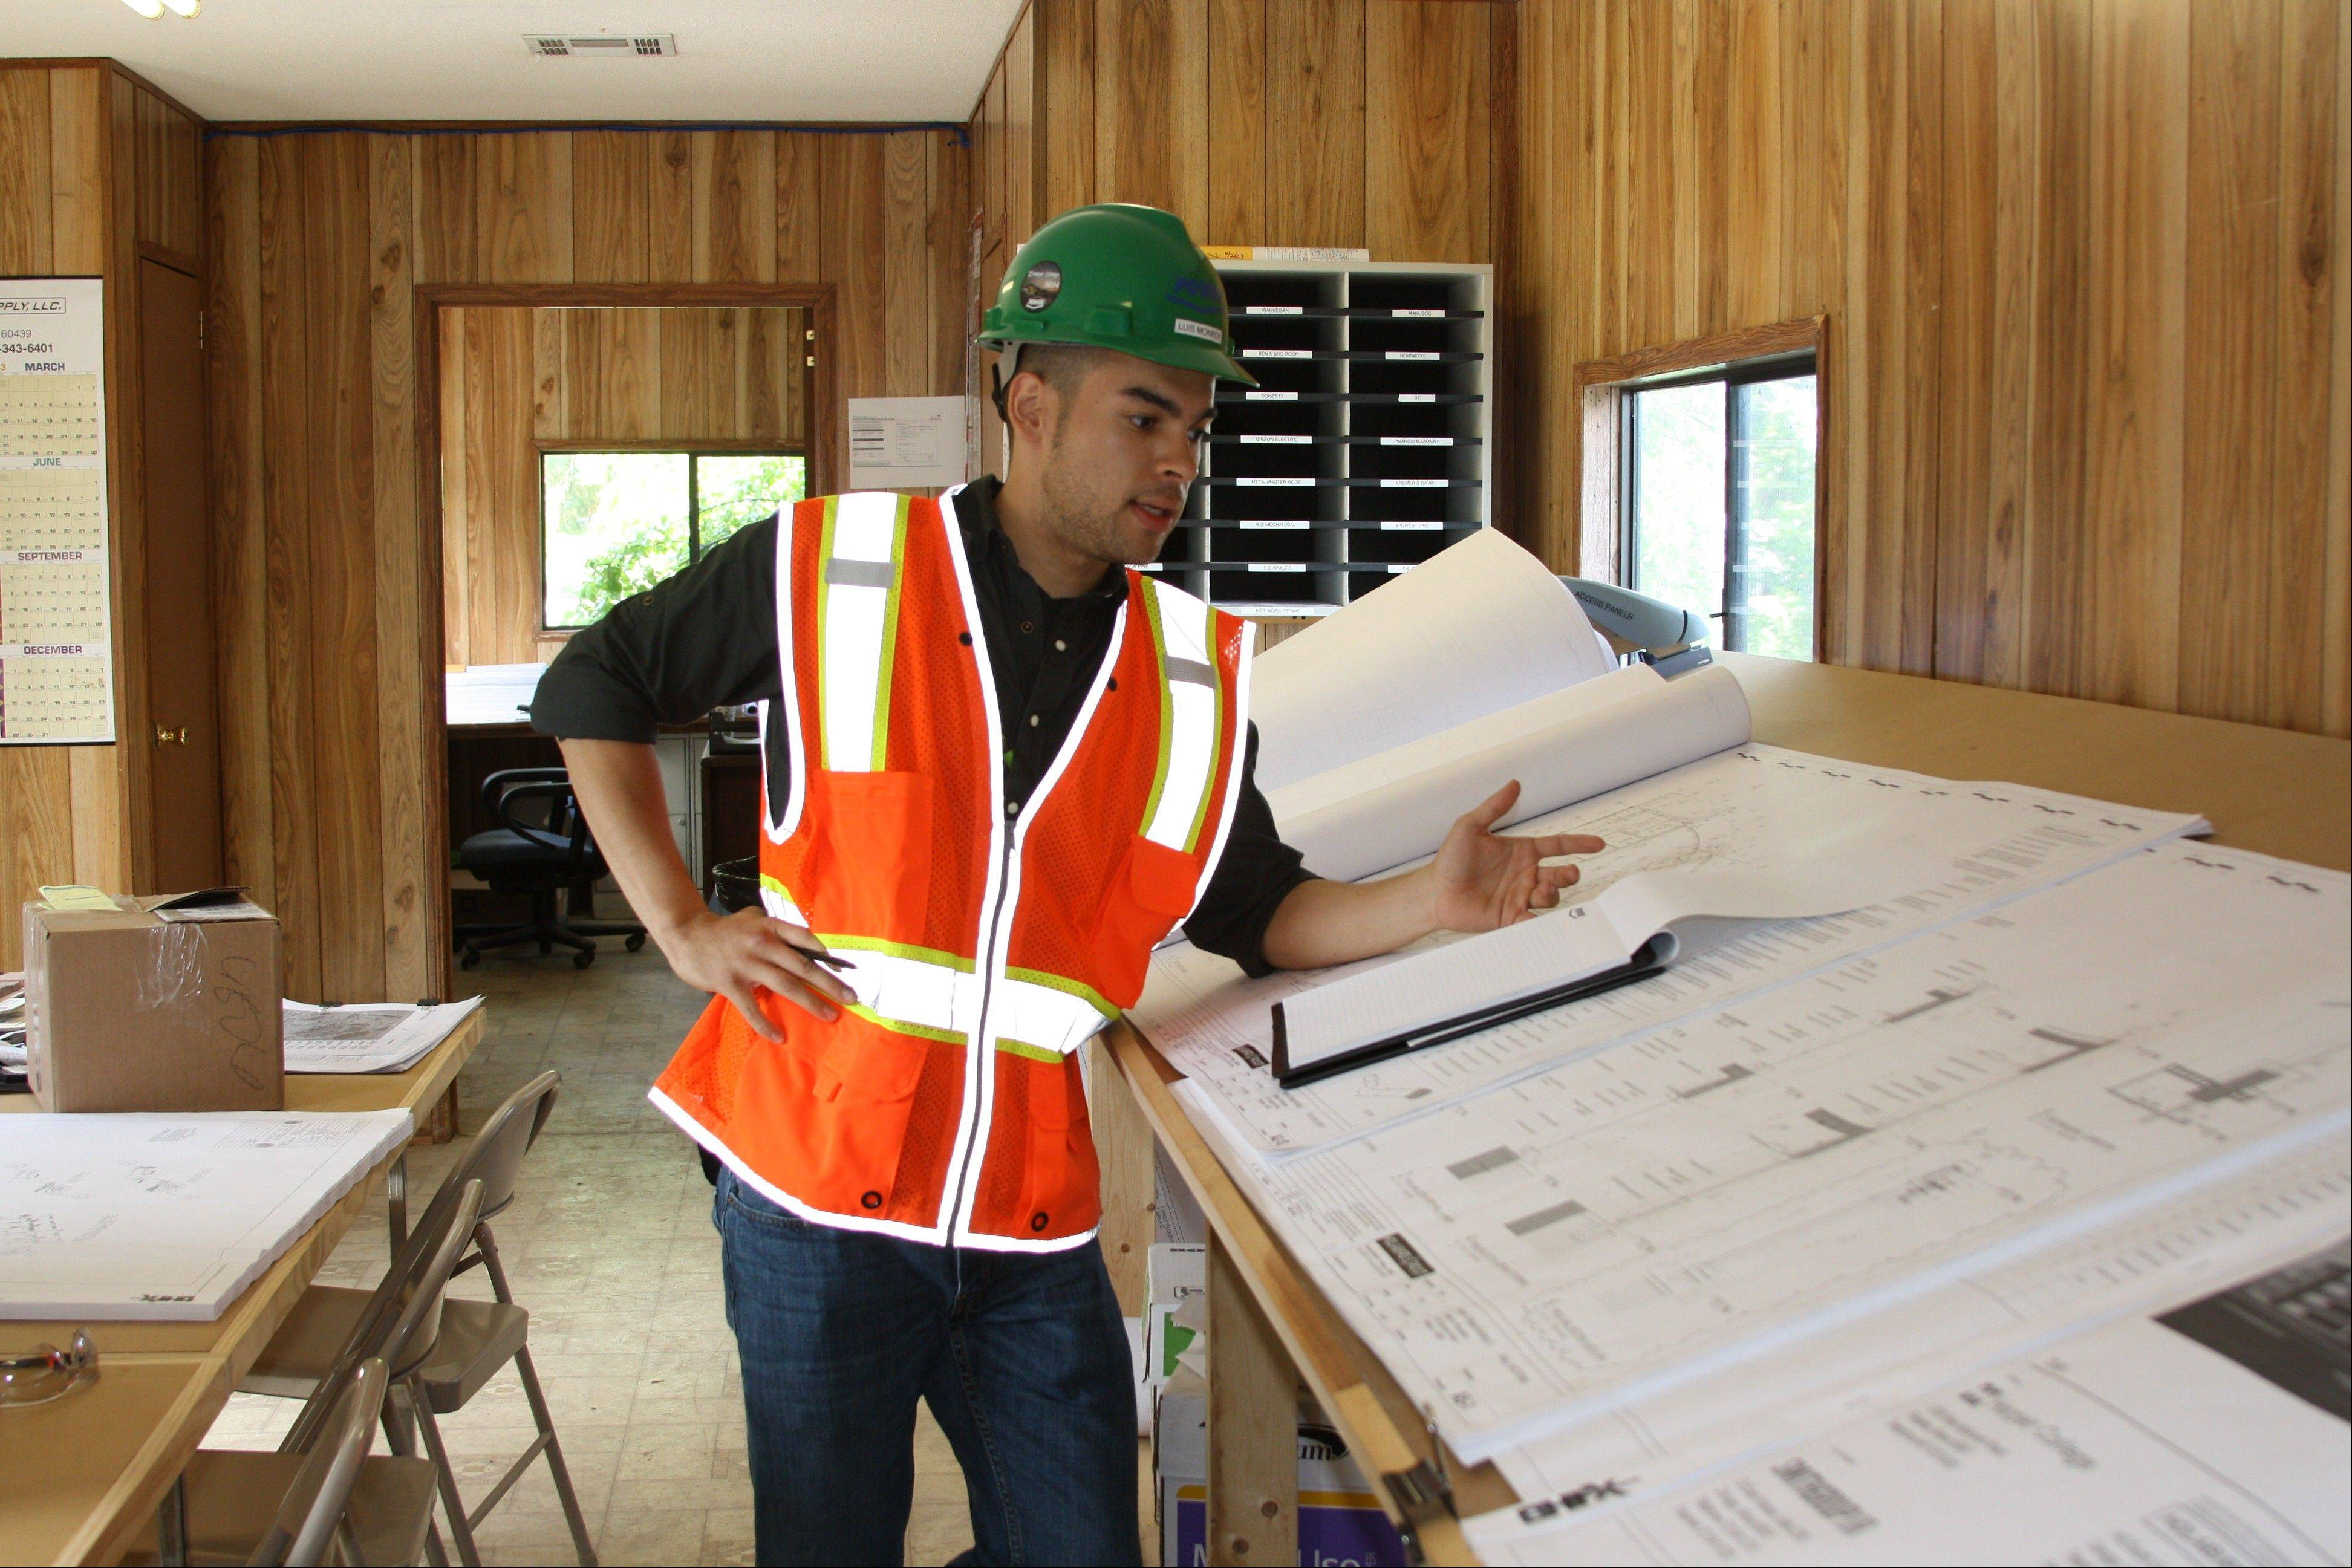 Harper College student Luis Monroy reviews architectural drawings as part of his internship with Power Construction, the company chosen to lead the college's campus reconstruction.